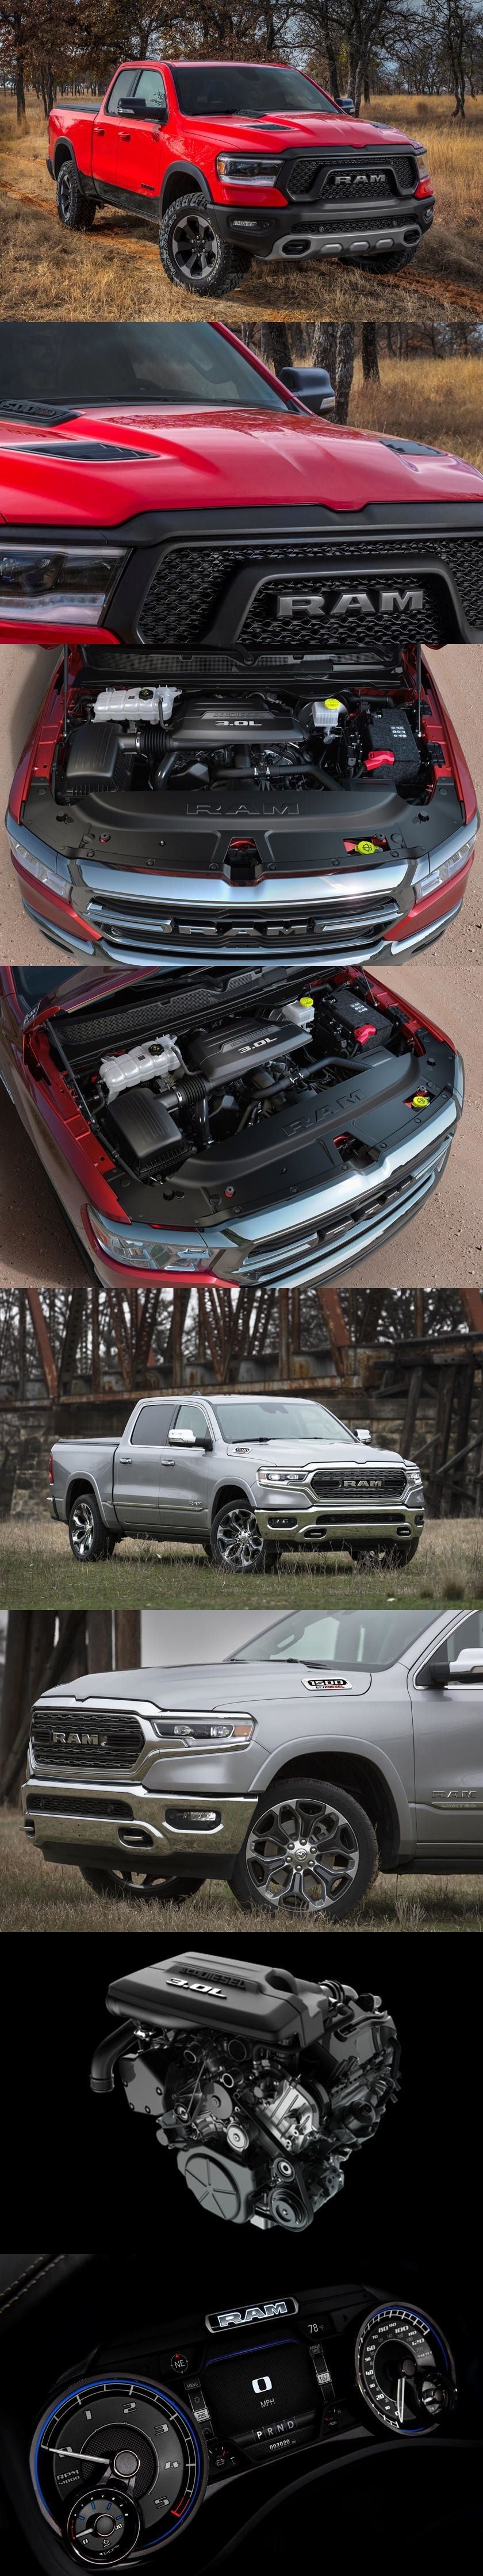 2020 Ram 1500 Ecodiesel Details Keep Getting Better Official Pricing Is Finally Here Ram 1500 Fuel Economy New Ram